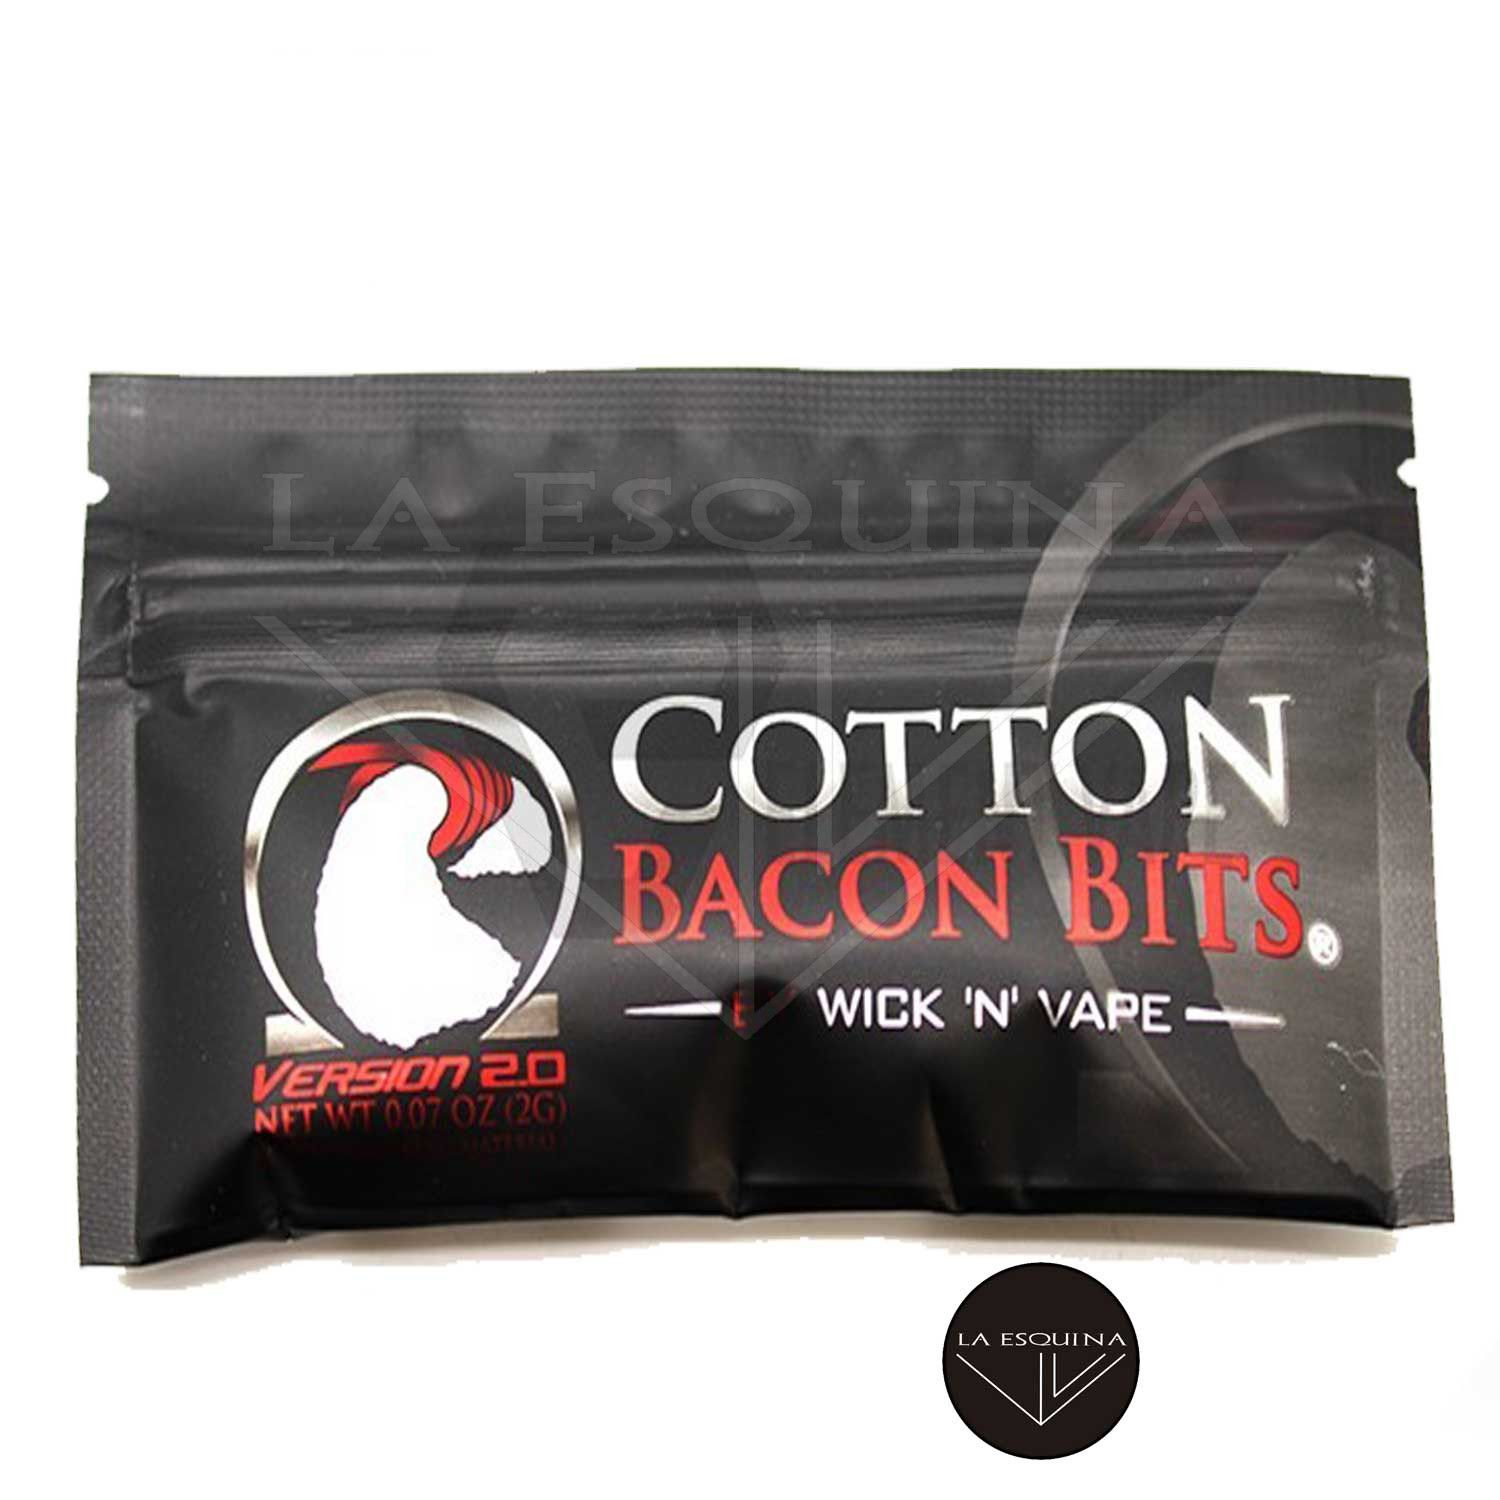 Algodón Cotton Bacon Bits v2 WICK 'N' VAPE